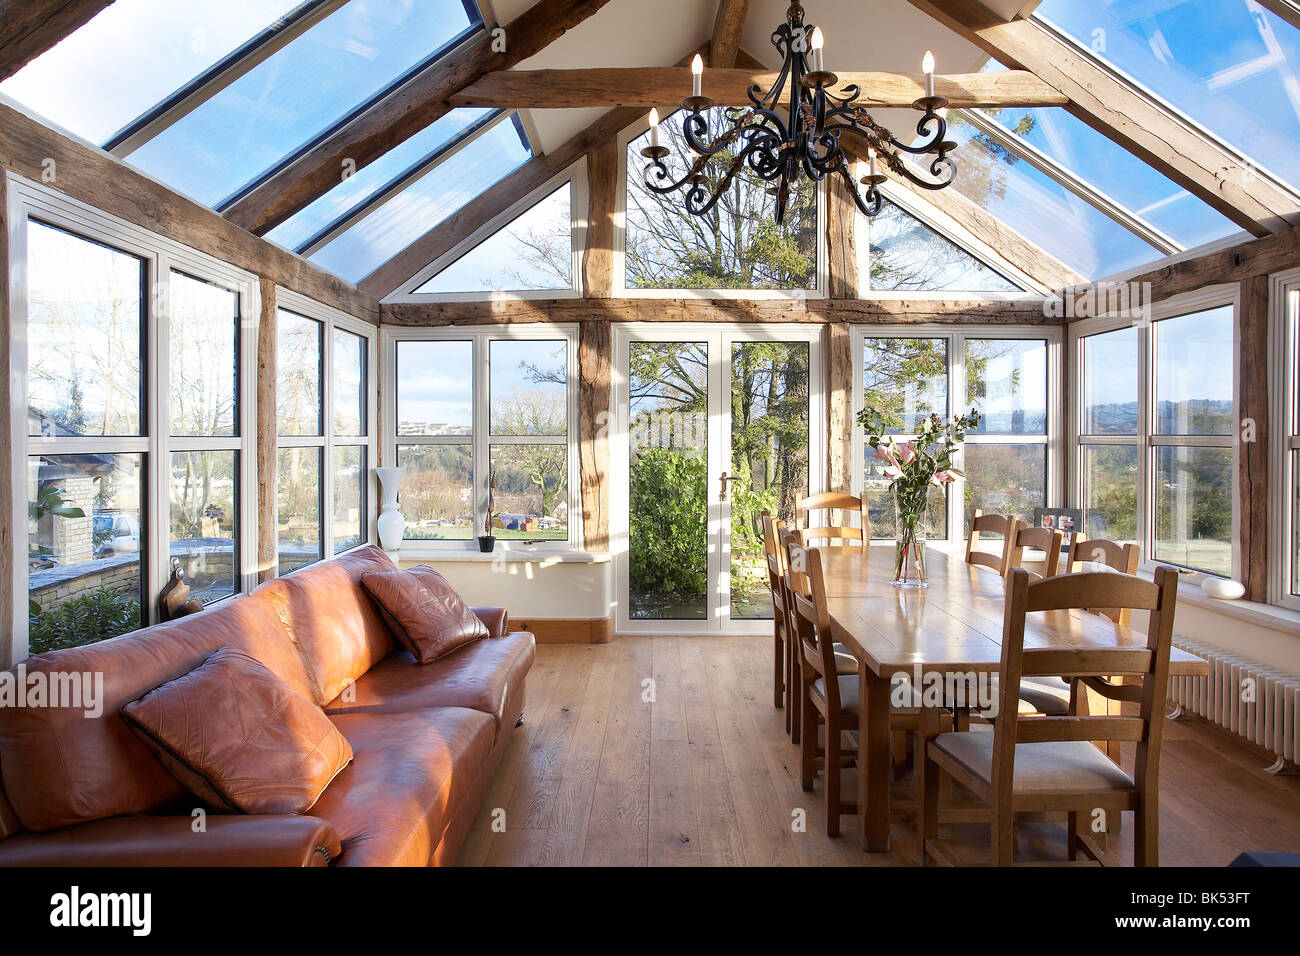 an orangery type conservatory interior of a house with oak frame